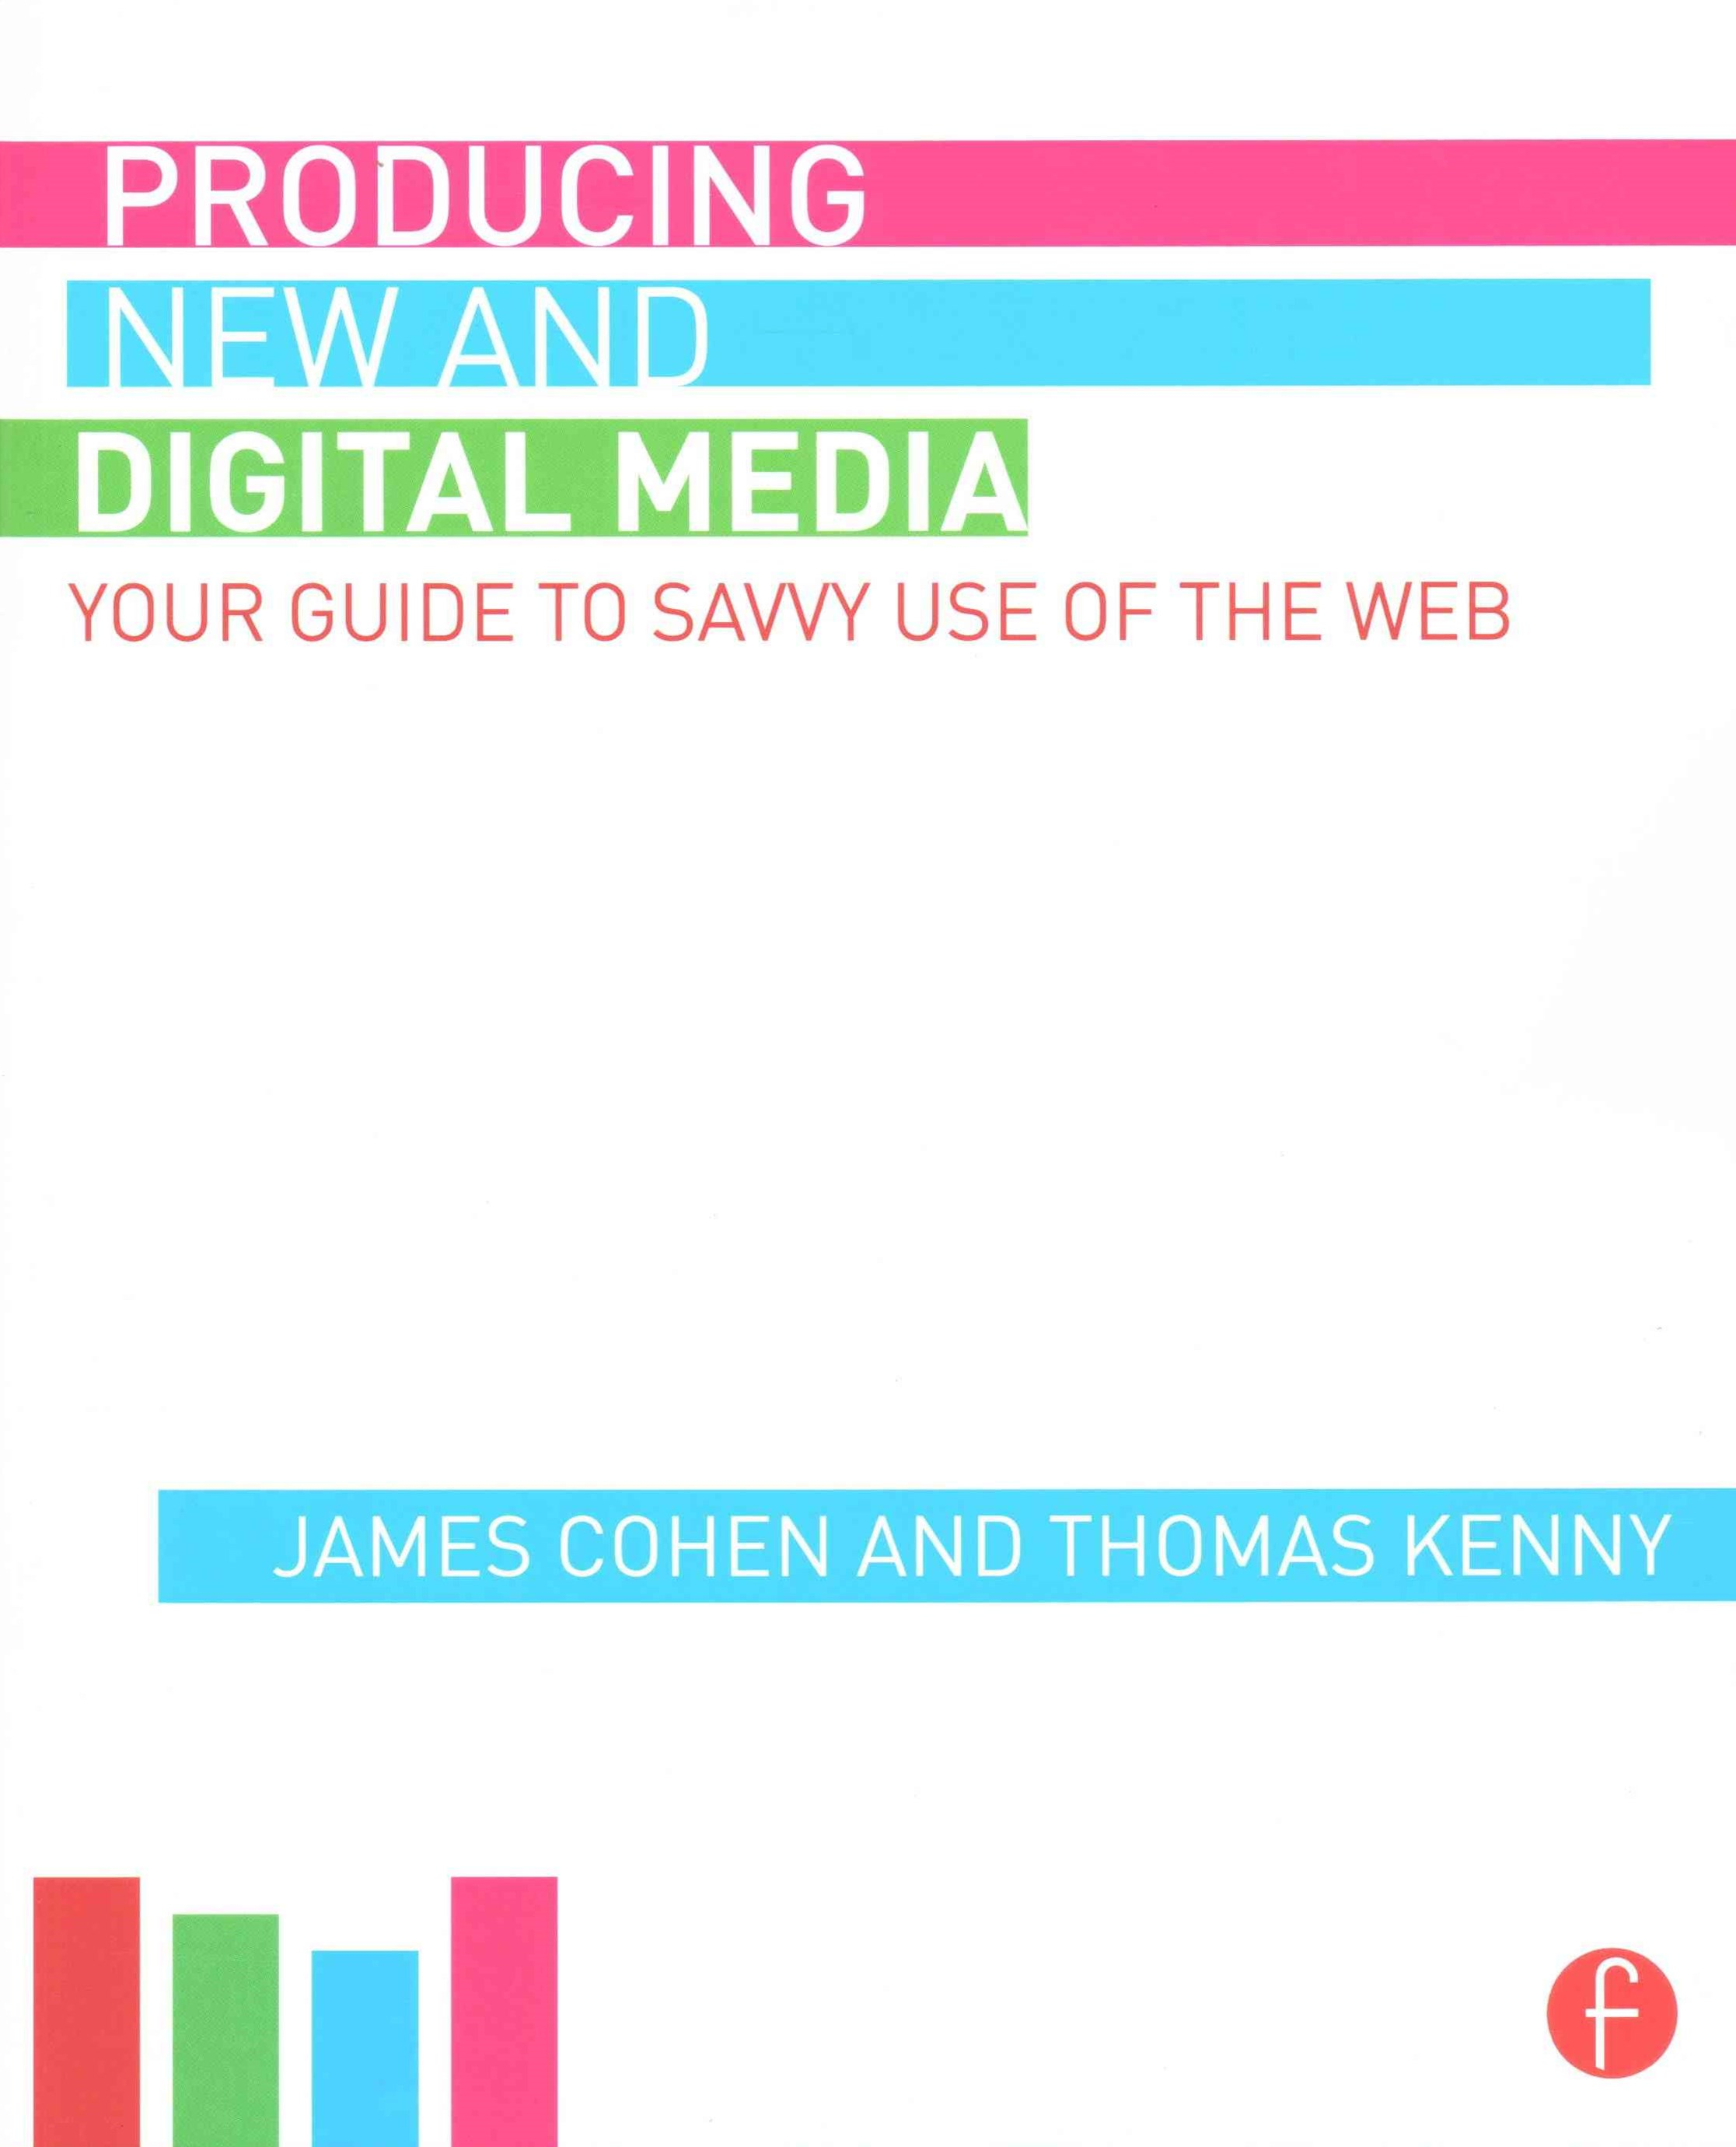 Producing New and Digital Media